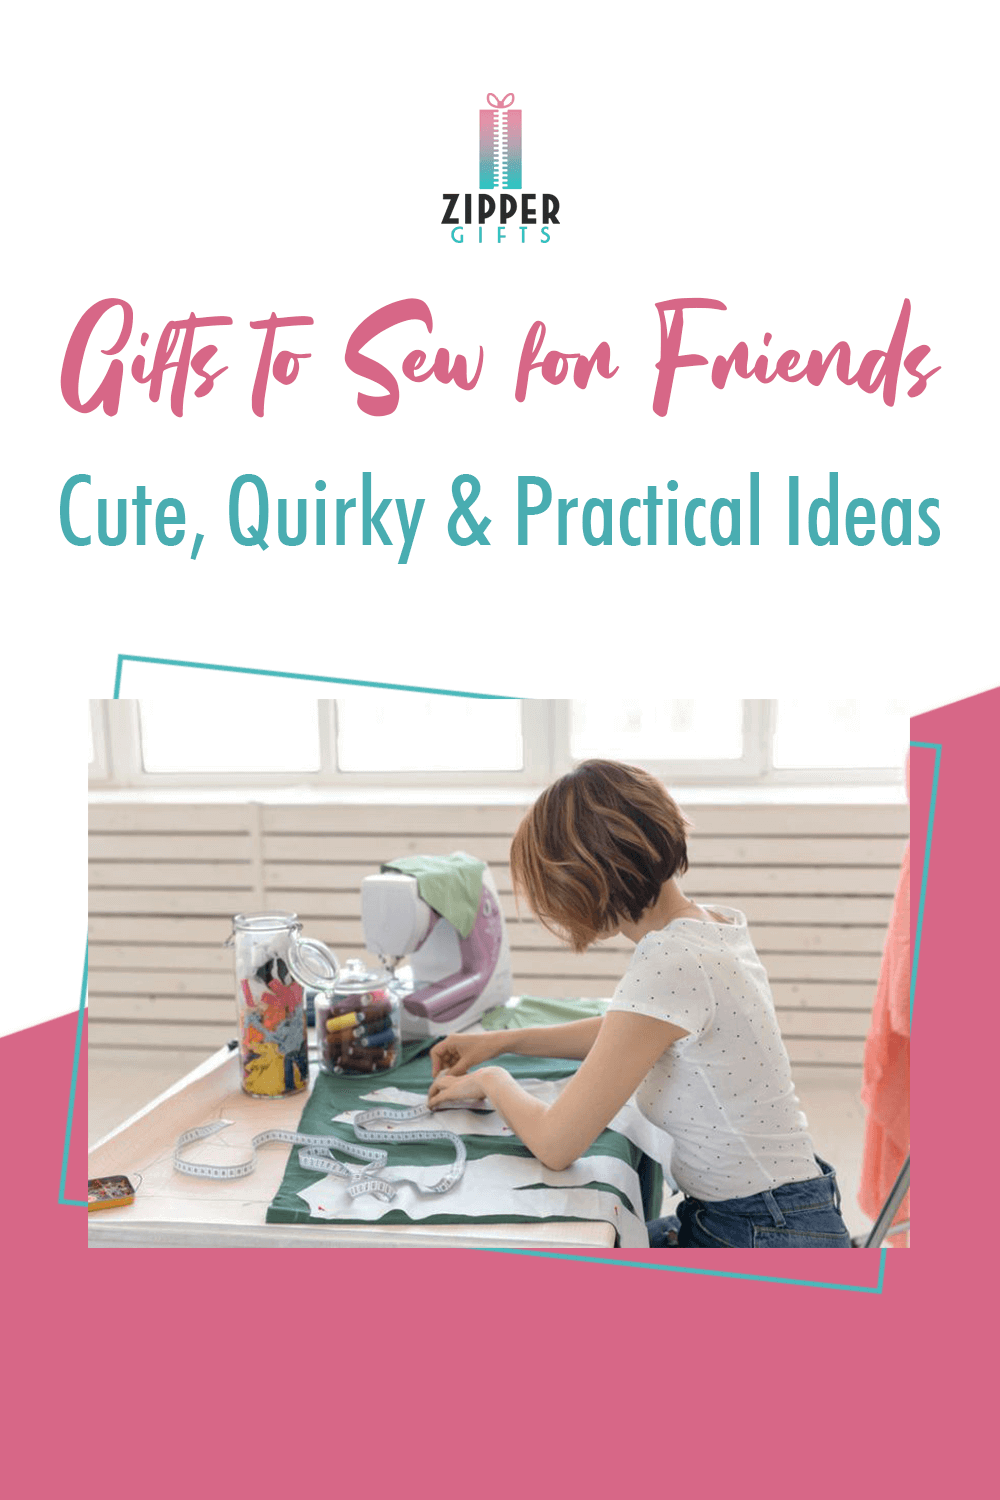 Gifts To Sew For Friends Cute, Quirky And Practical Ideas